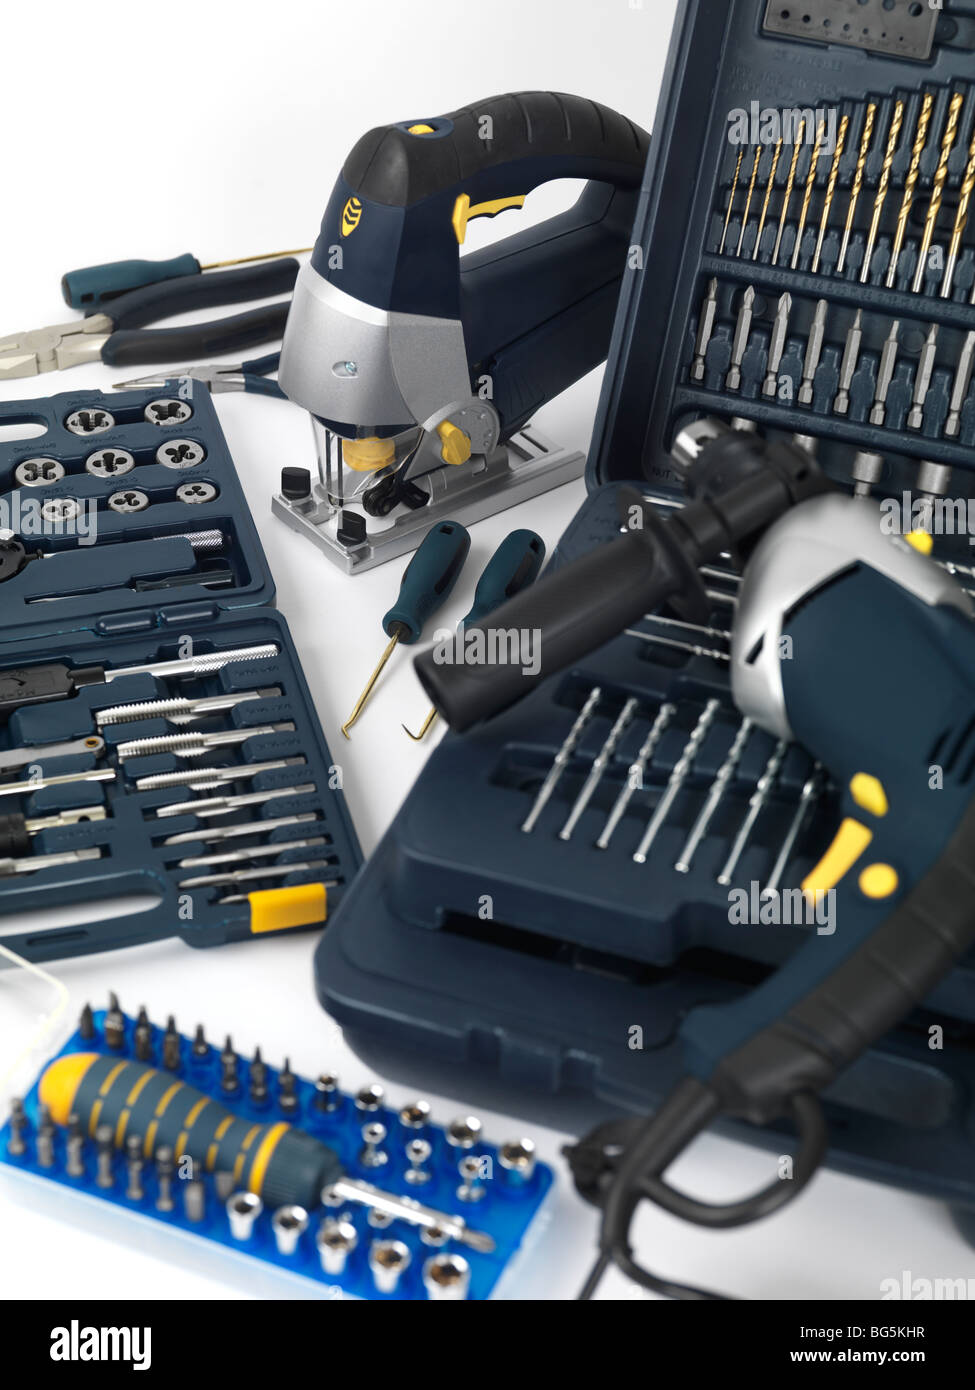 Electric drill, a jigsaw, thread cutting dies and taps, drill bits and other tools - Stock Image